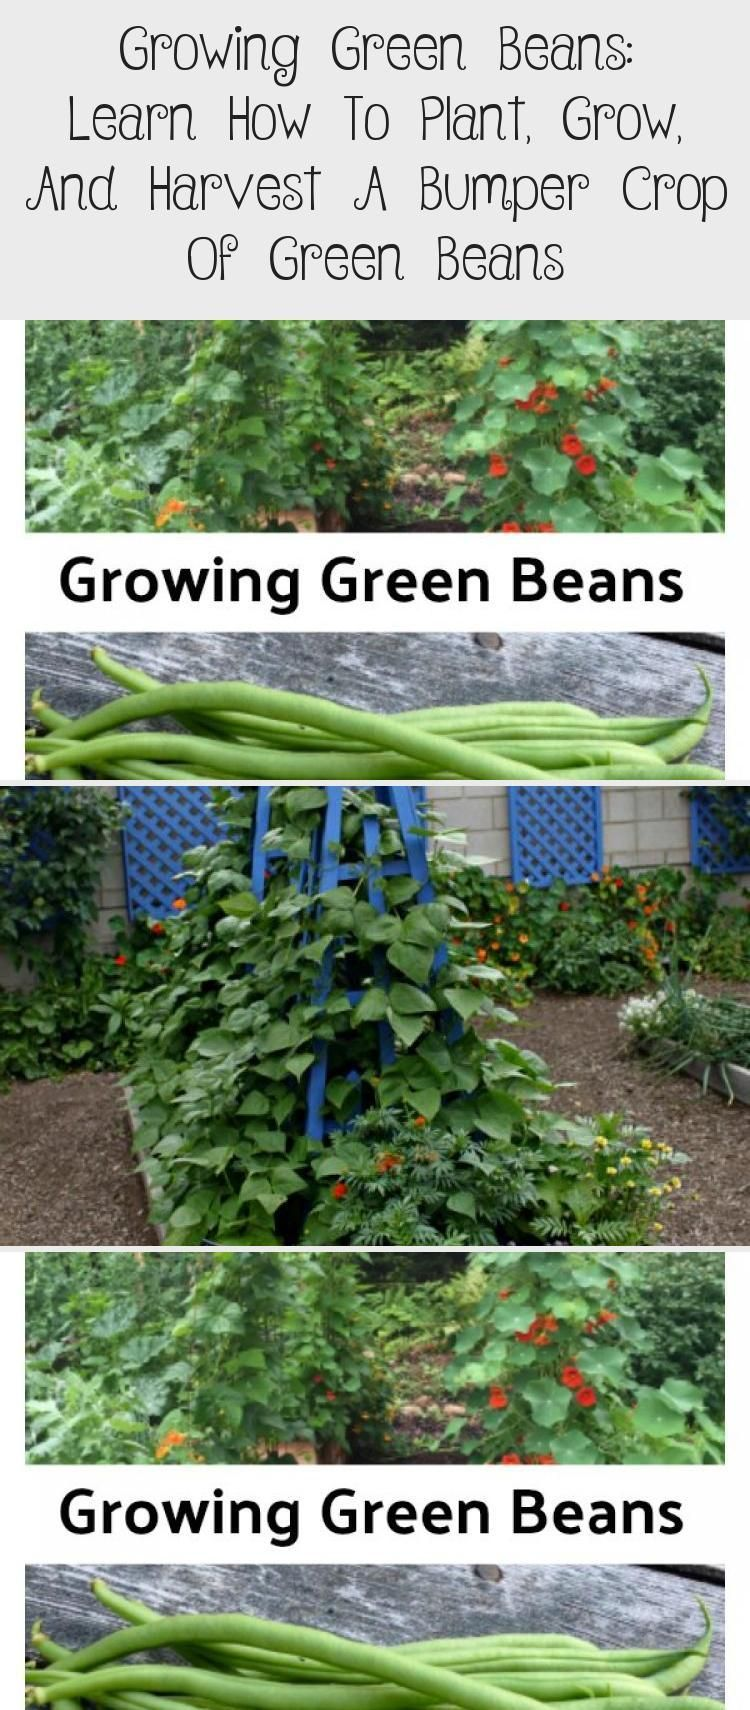 Tips For Growing Green Beans In Garden Beds And Containers Grow Pole Beans Up A Strong Support Like A Tr Growing Green Beans Green Beans Garden Growing Greens